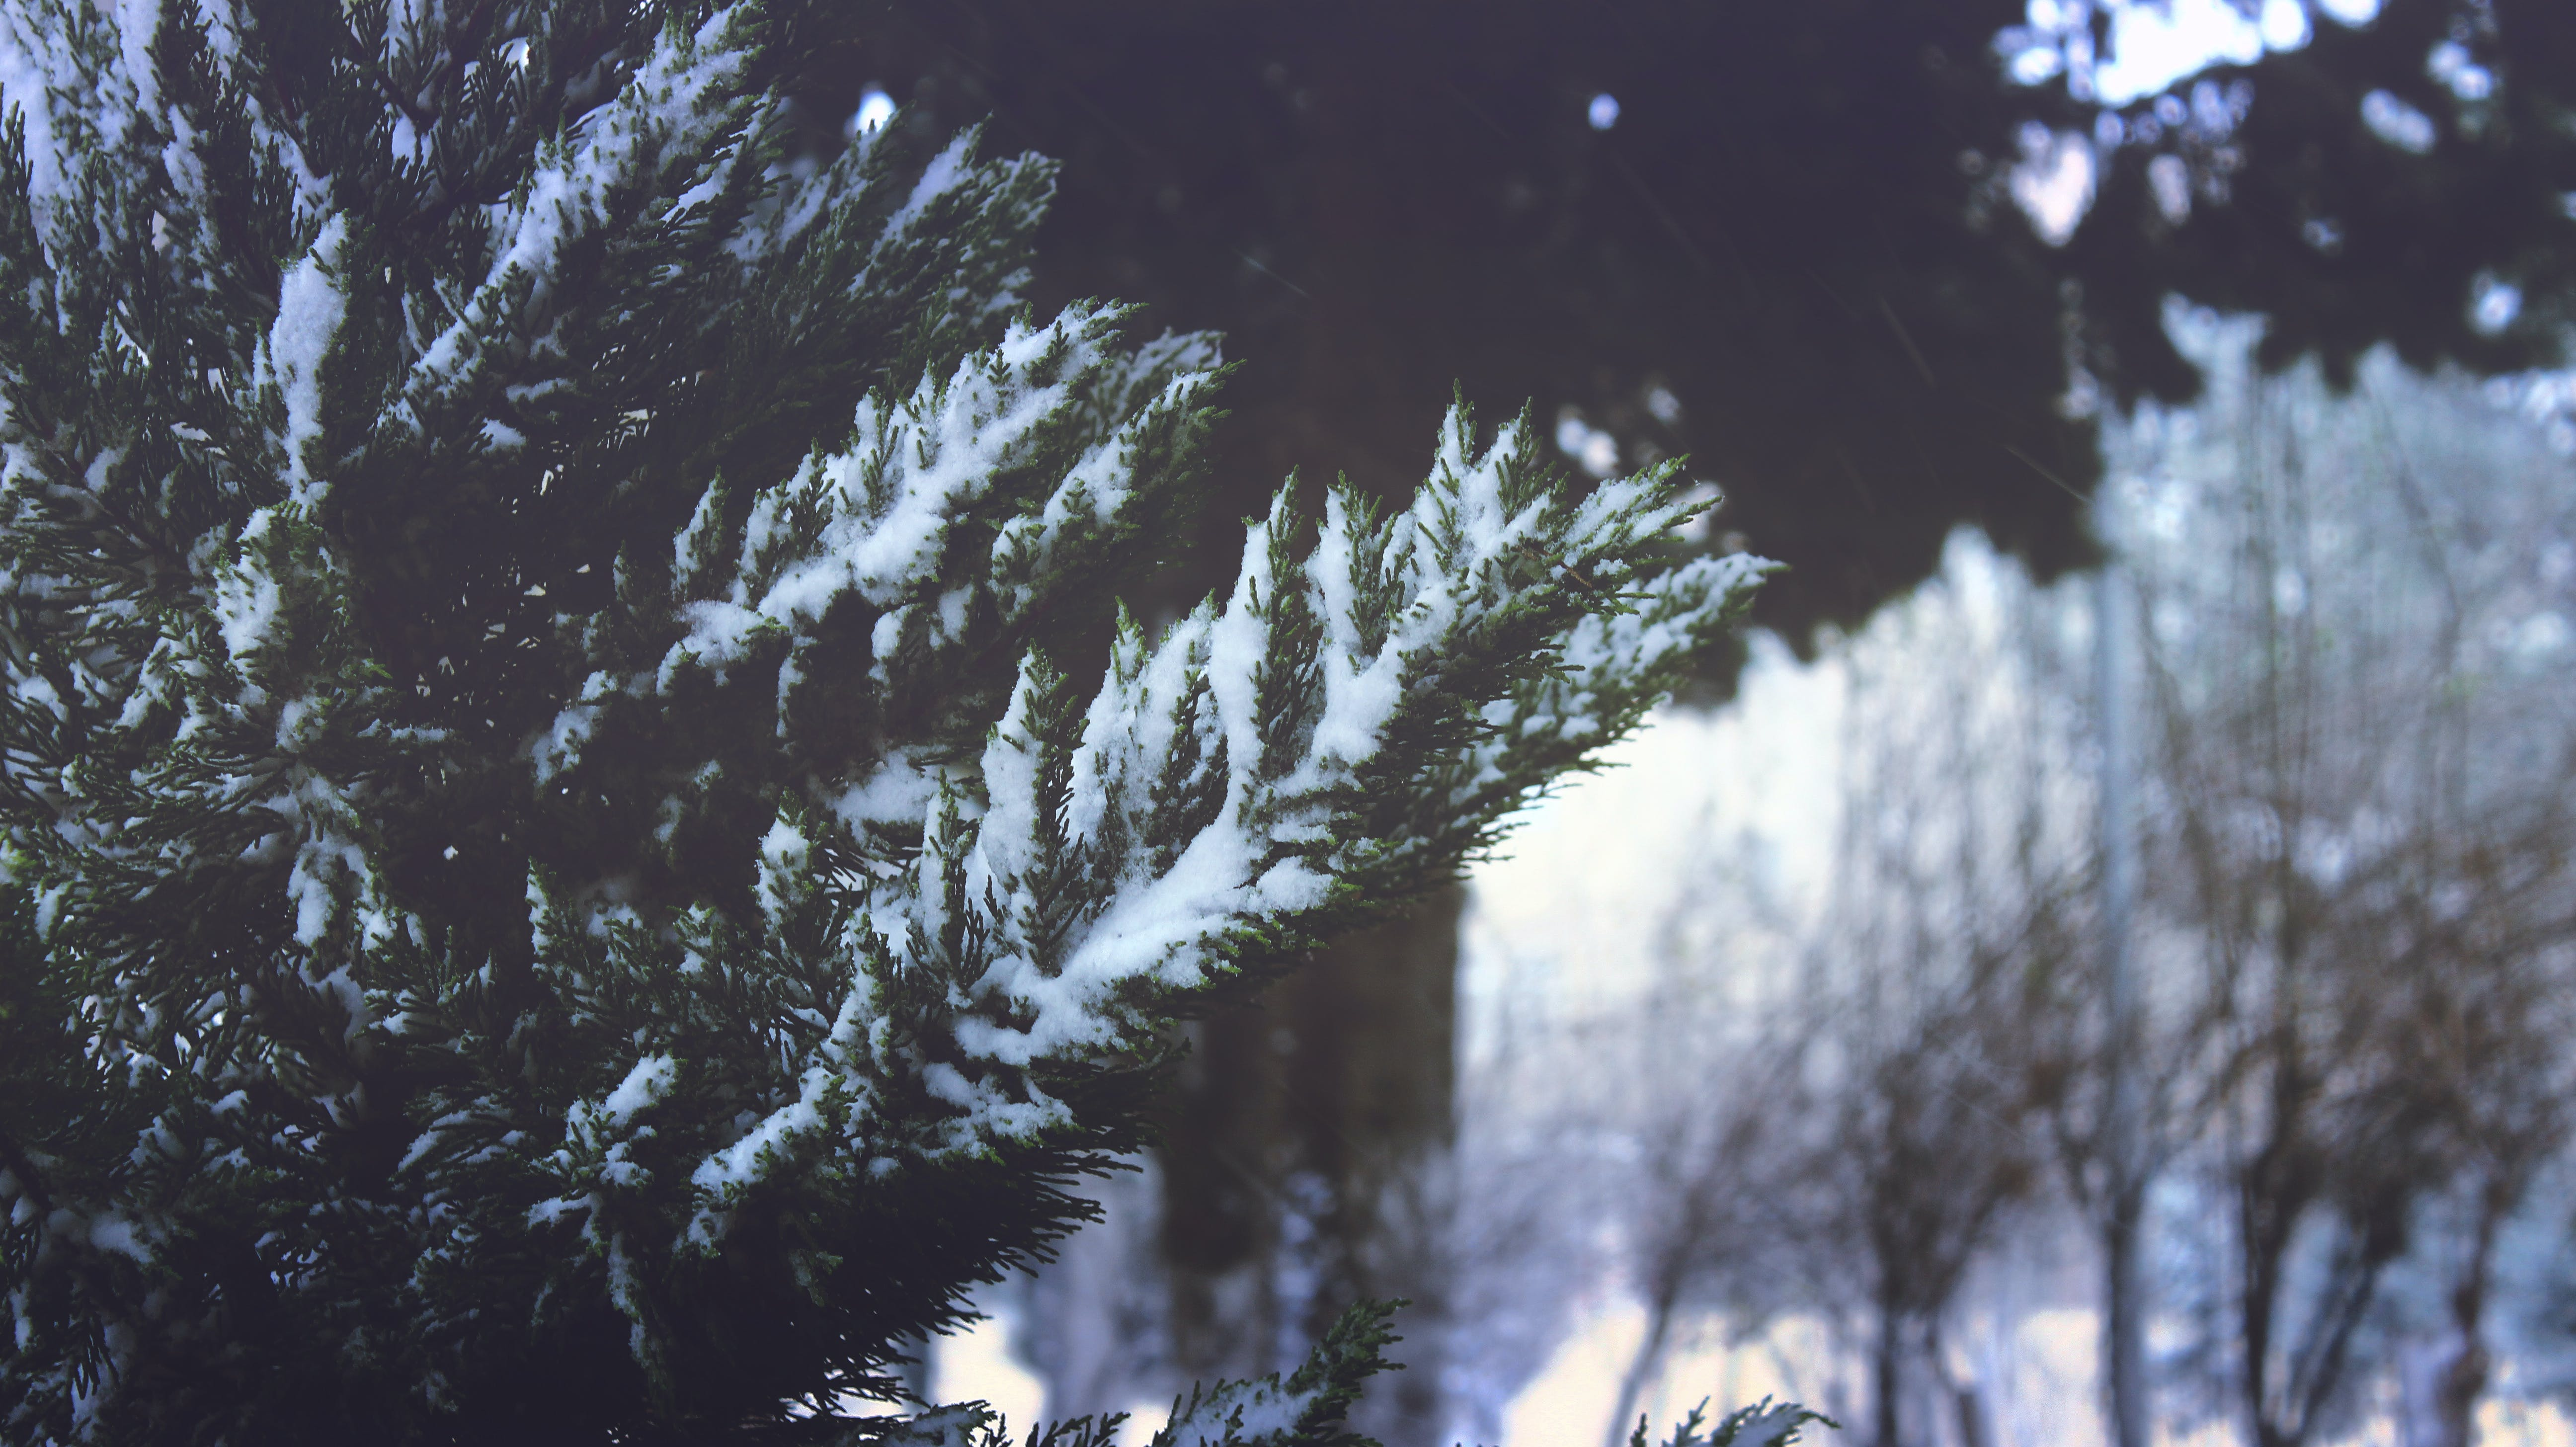 Close-up of Pine Trees in Forest during Winter